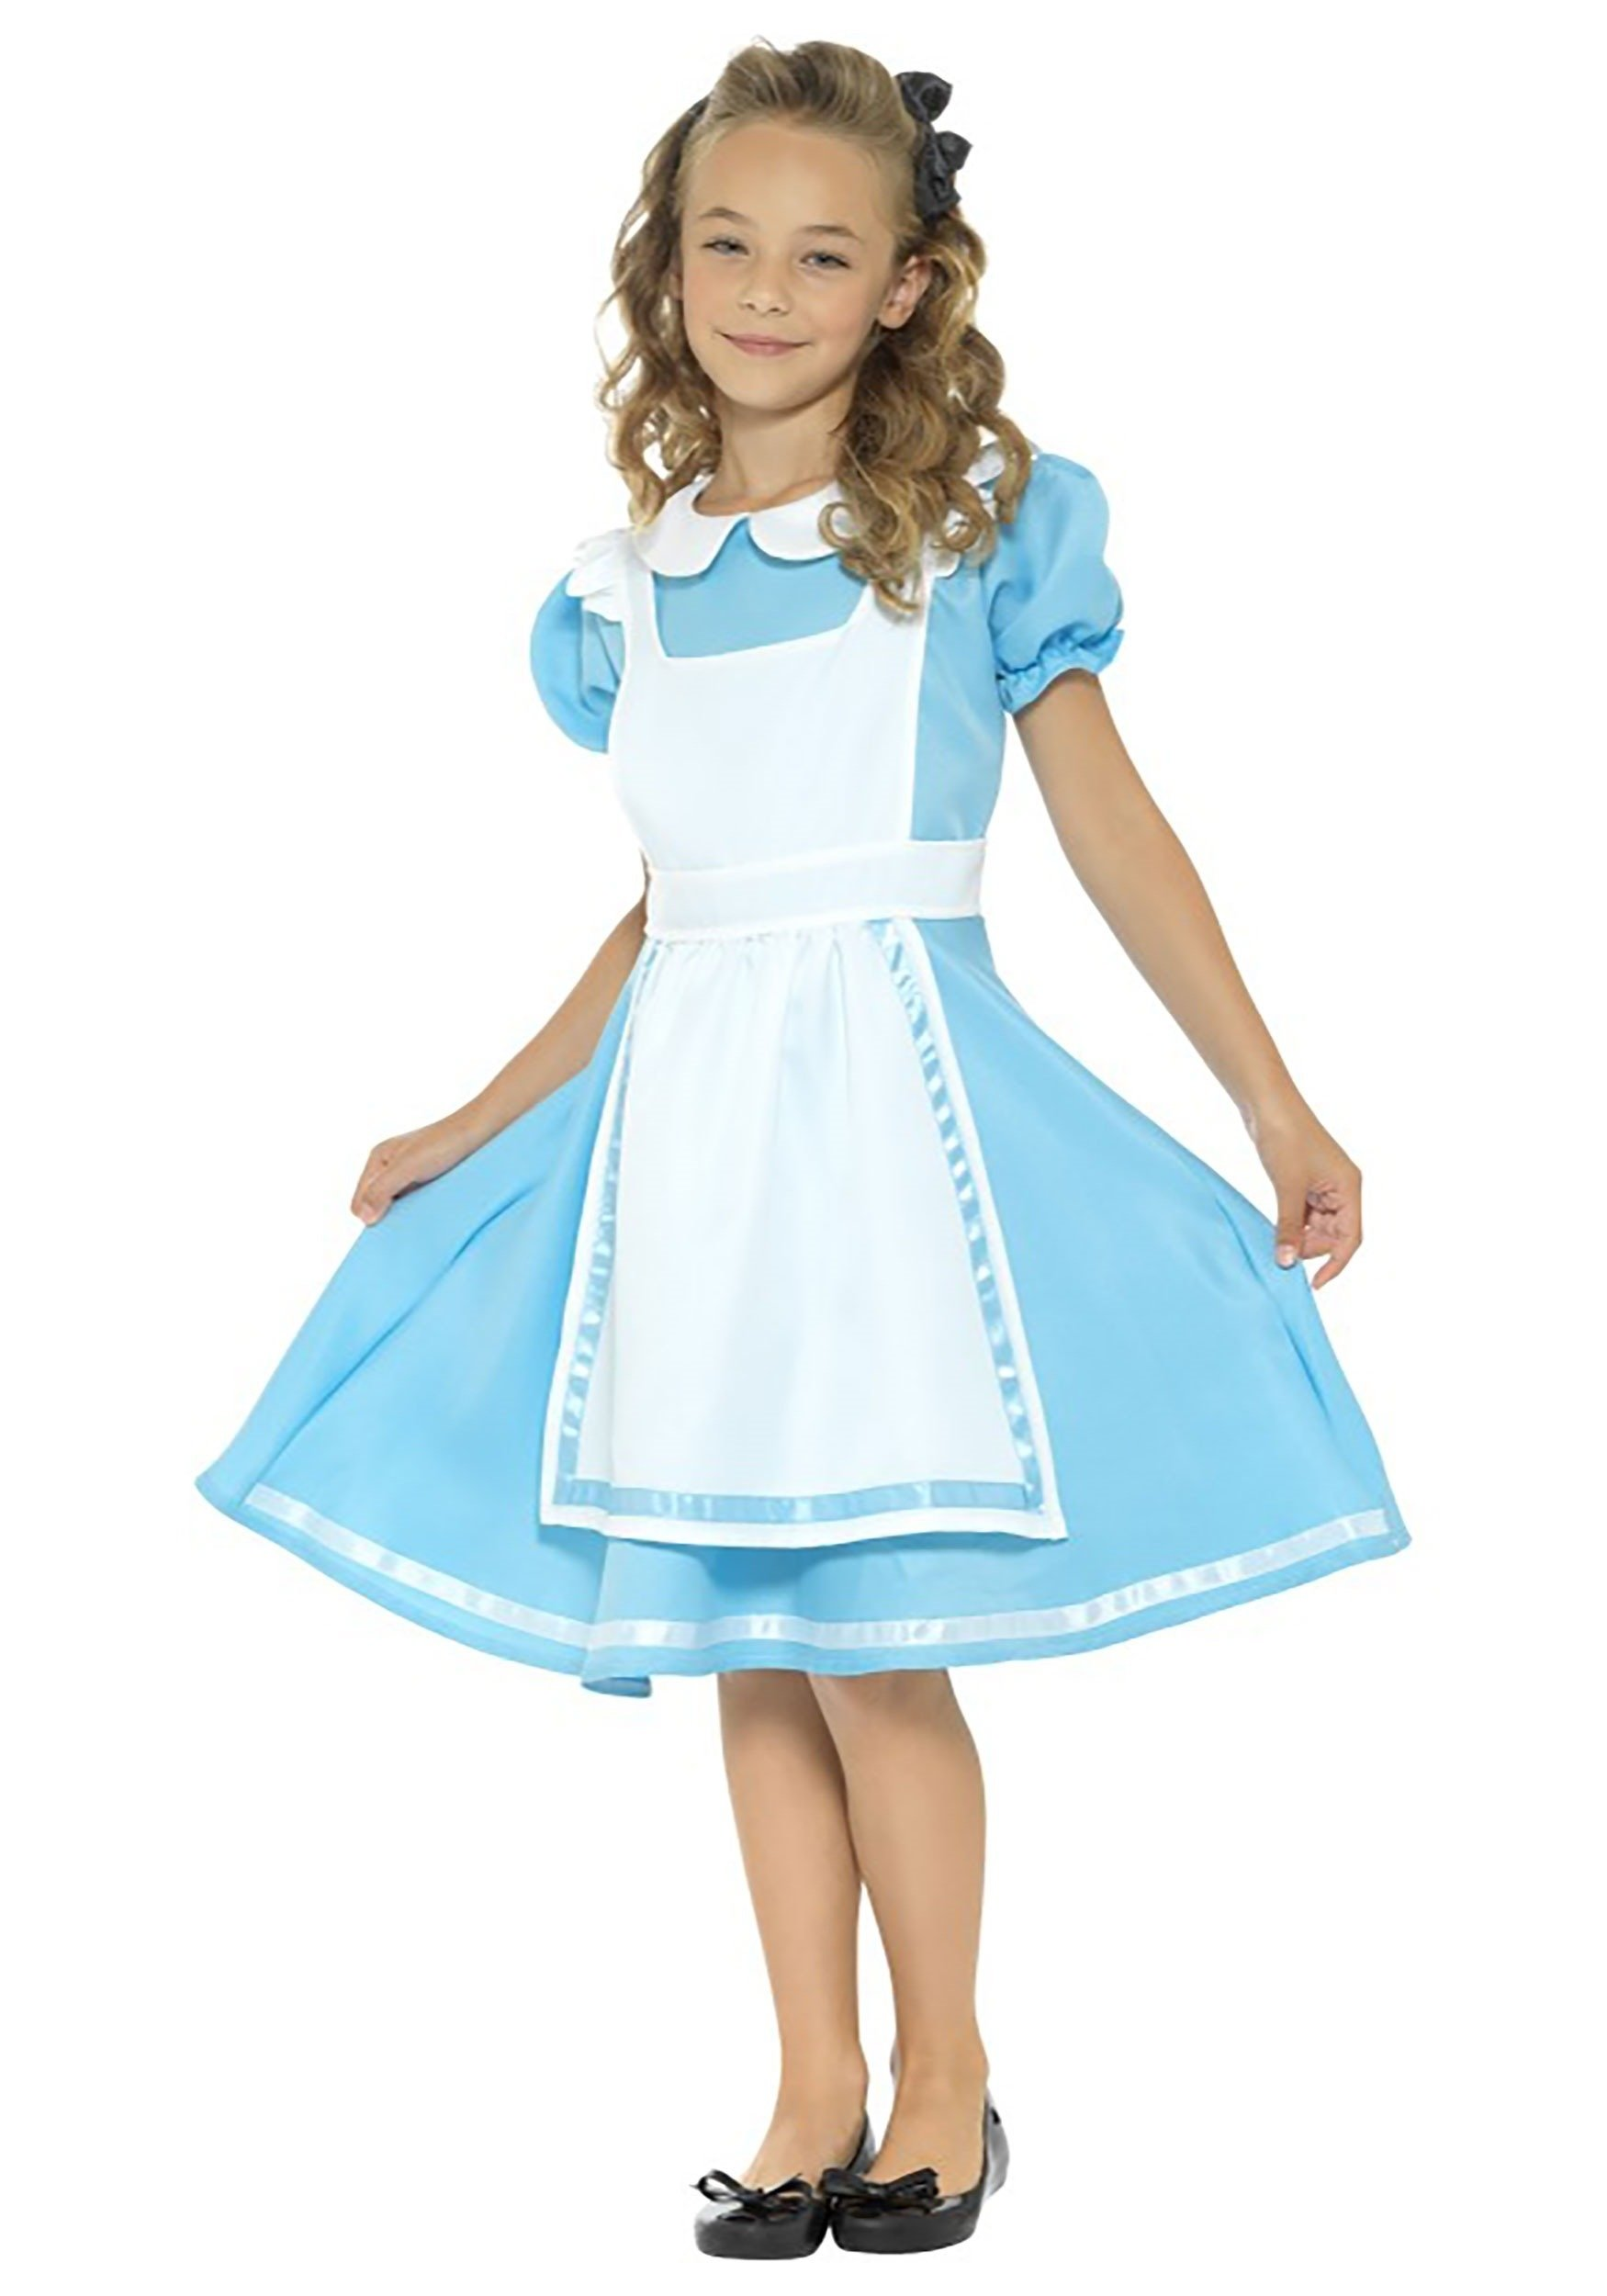 10 Gorgeous Alice And Wonderland Costume Ideas kids alice in wonderland costumes child halloween costume toddler 2020